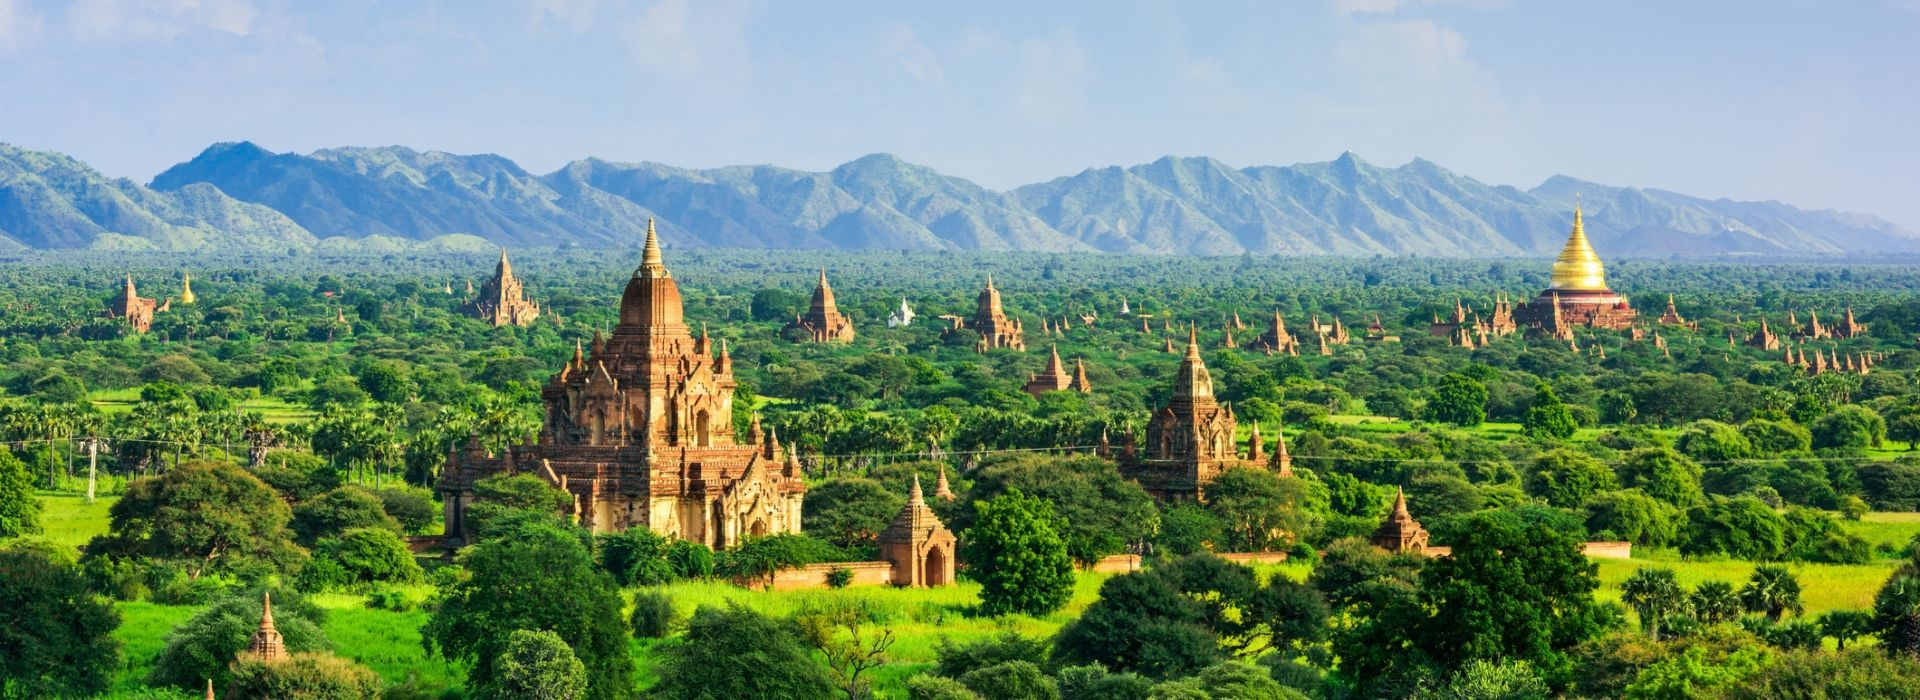 Myanmar Tours and Trips to Myanmar